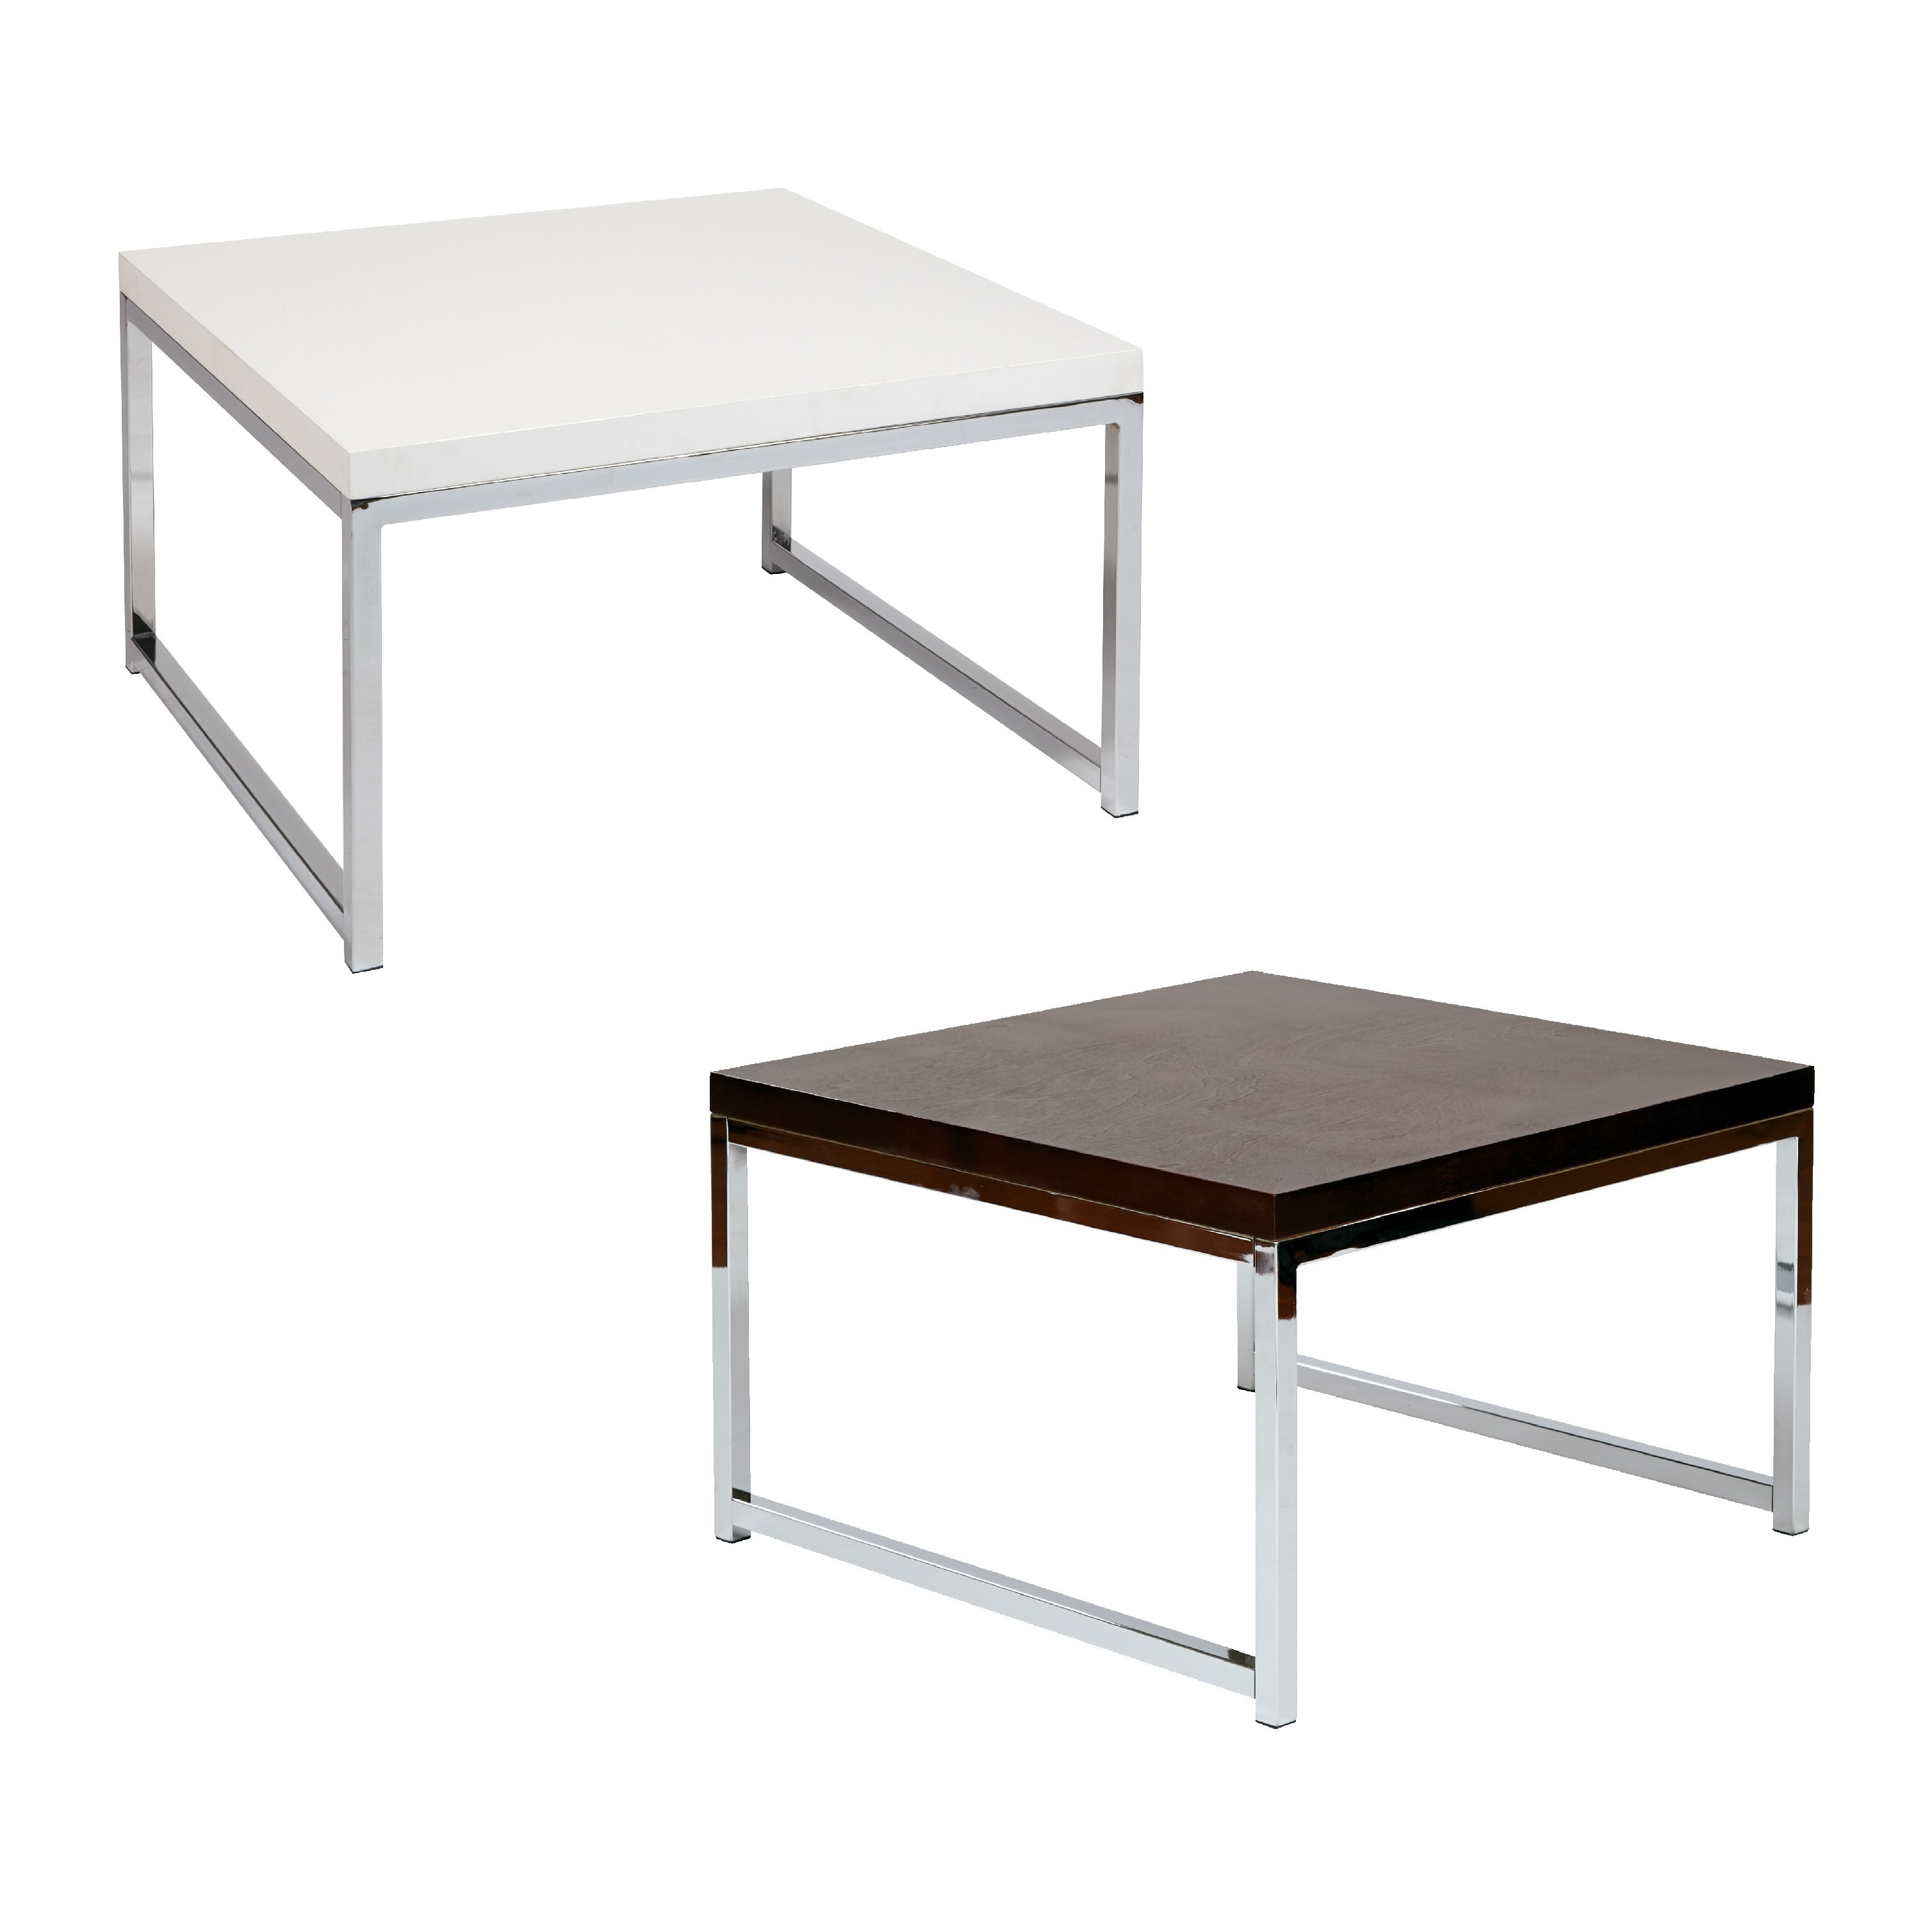 Avenue six wall street 28 accent table in chrome espresso wst 17 picture 5 of 6 geotapseo Choice Image